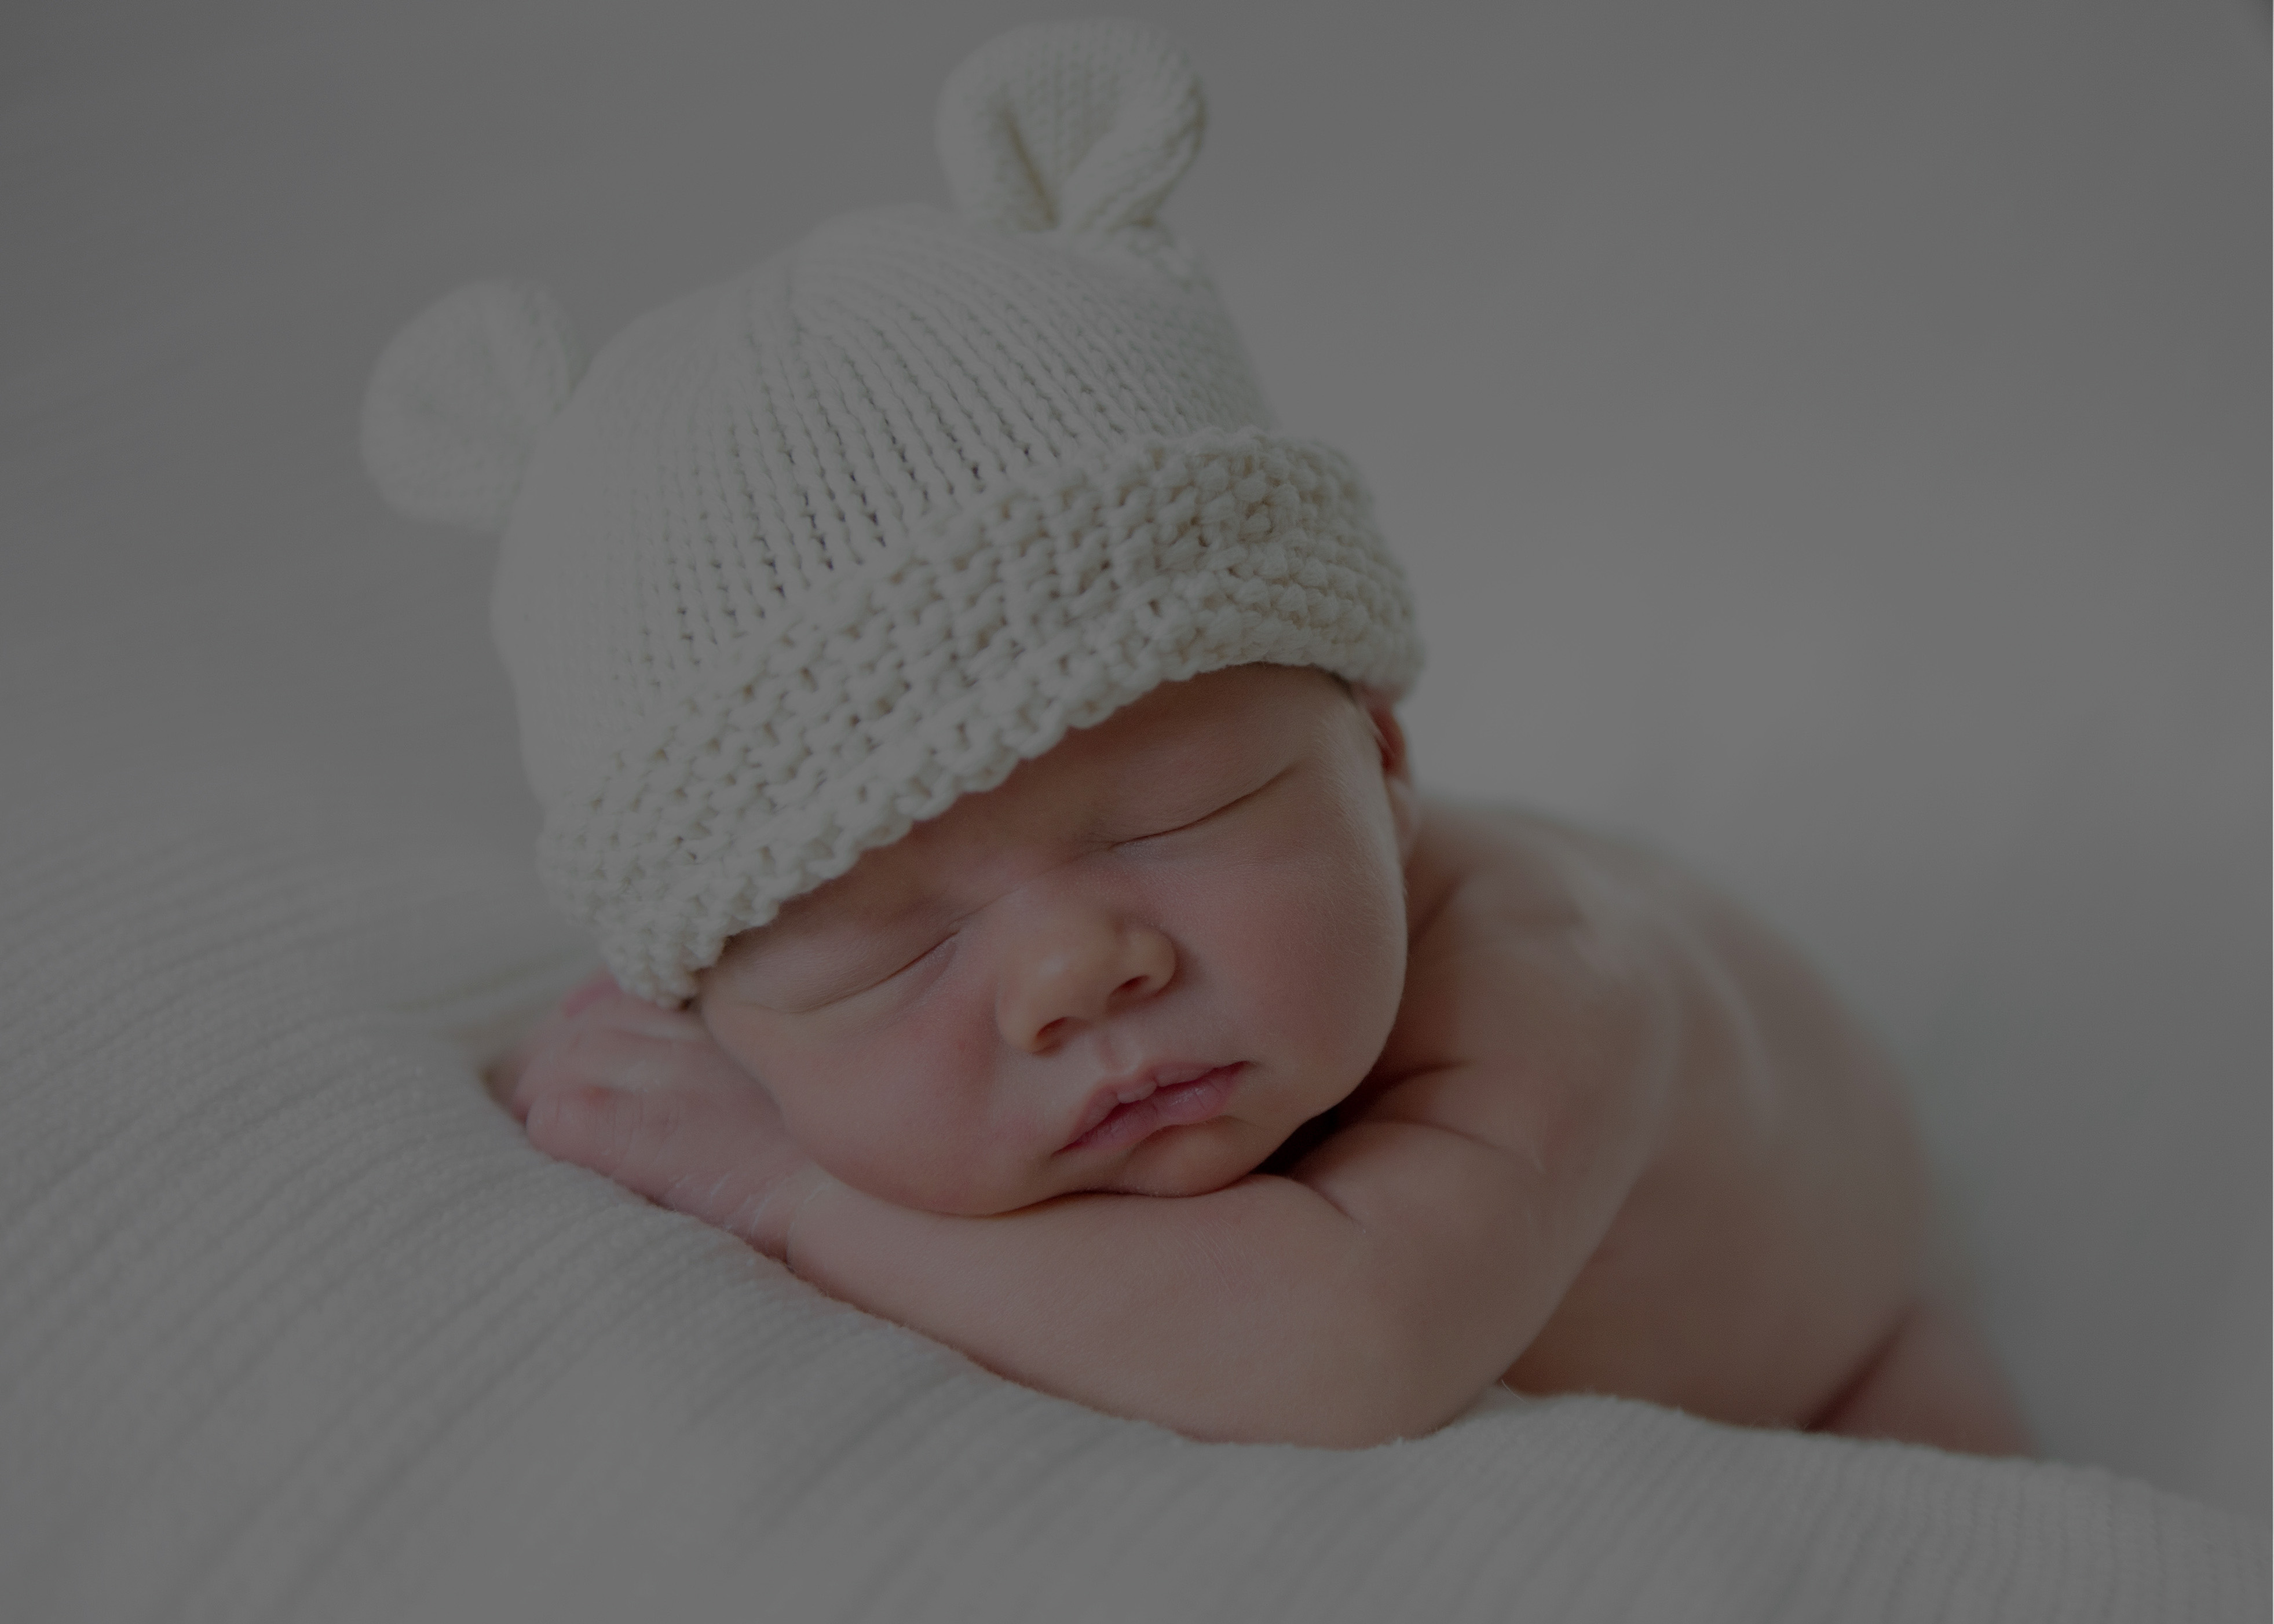 New born baby sleeping with a white hat